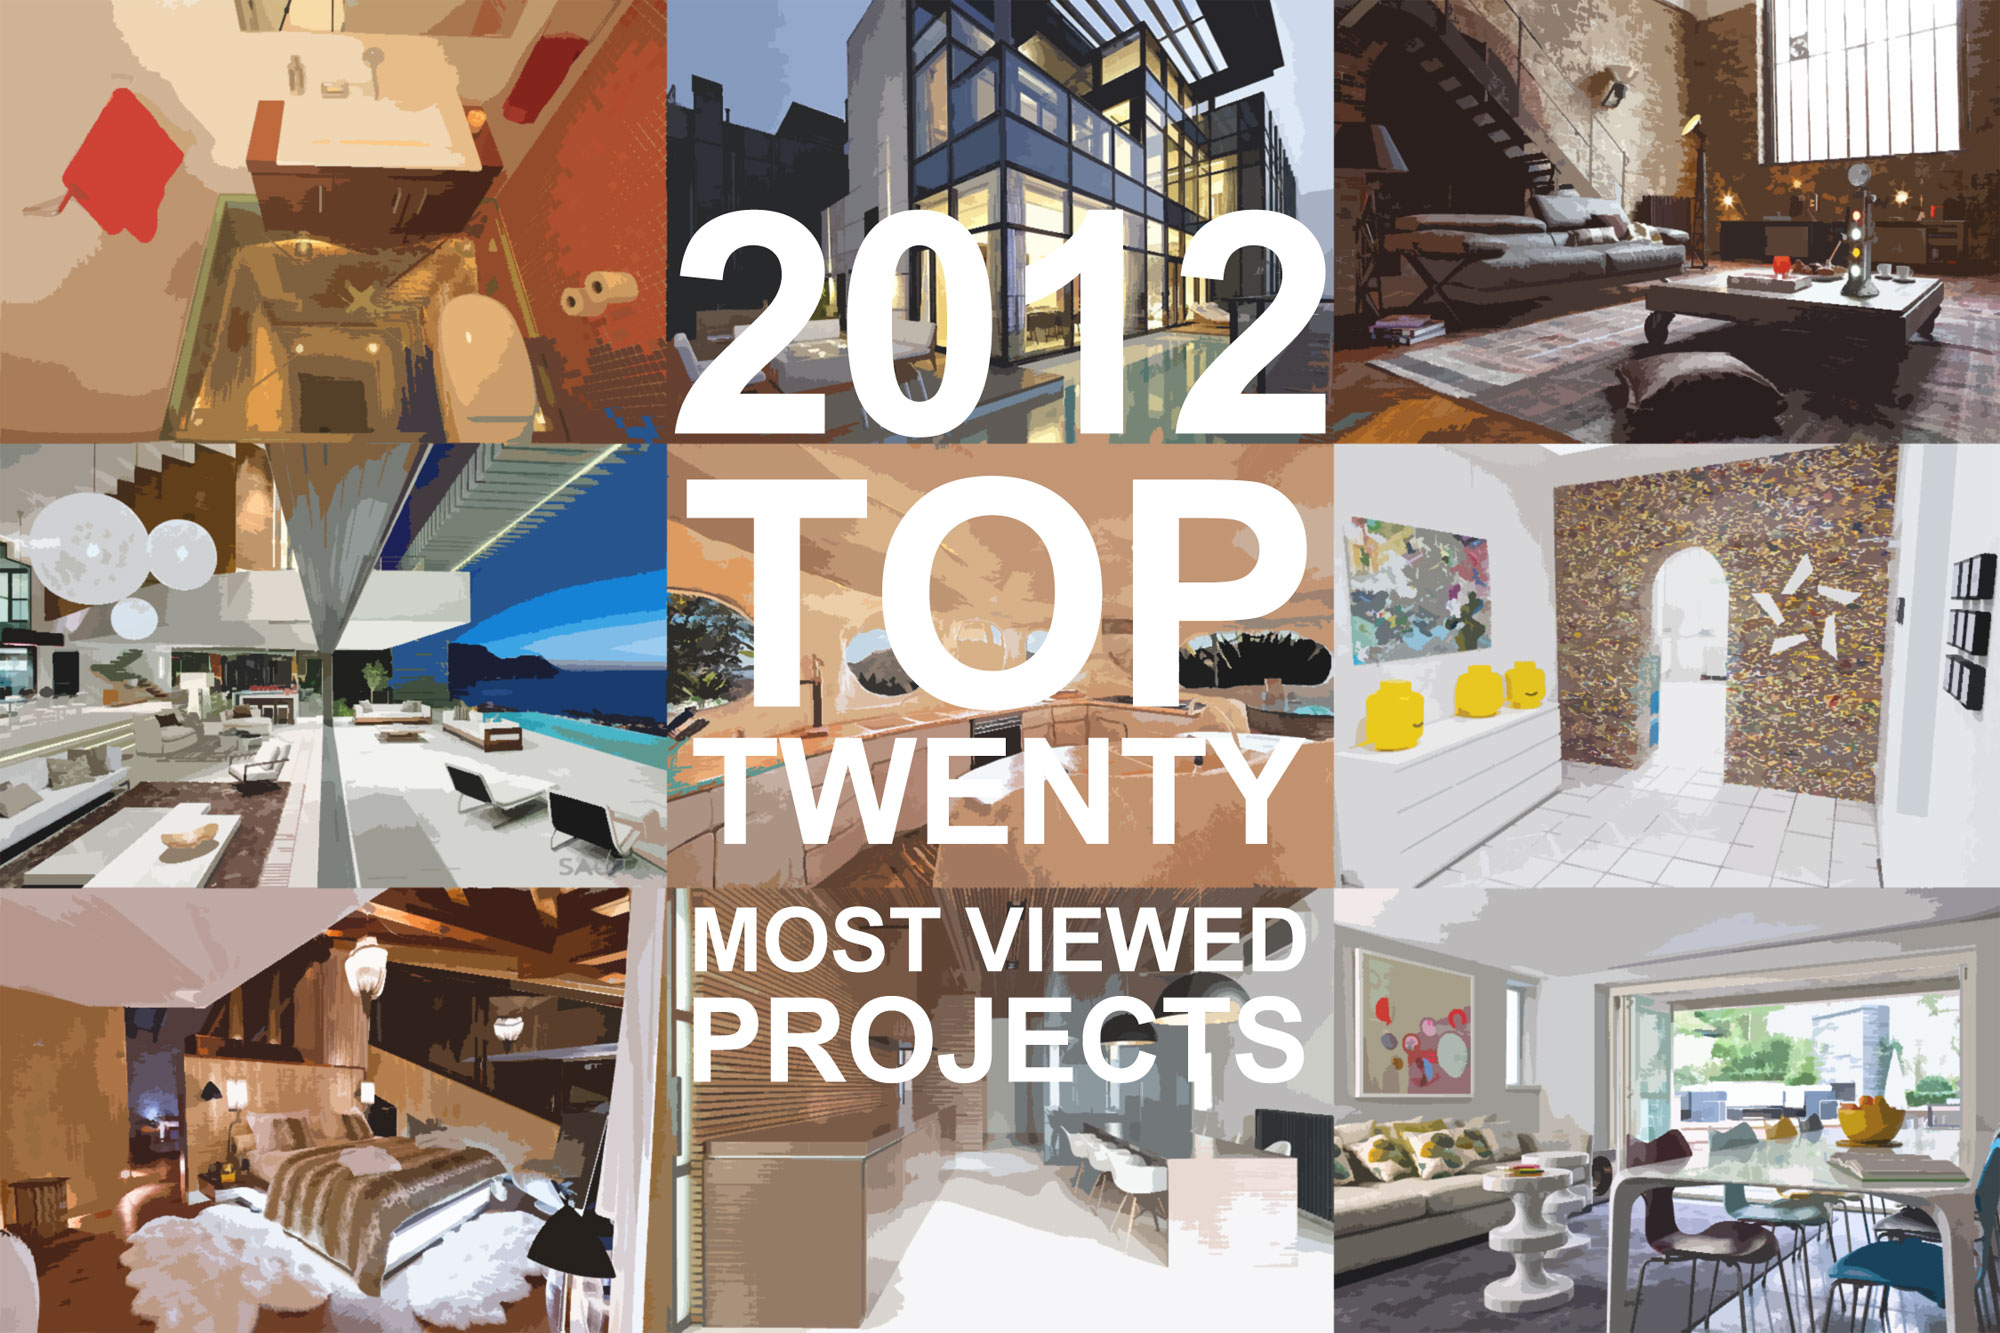 HomeDSGN's 20 Most Popular Projects of 2012